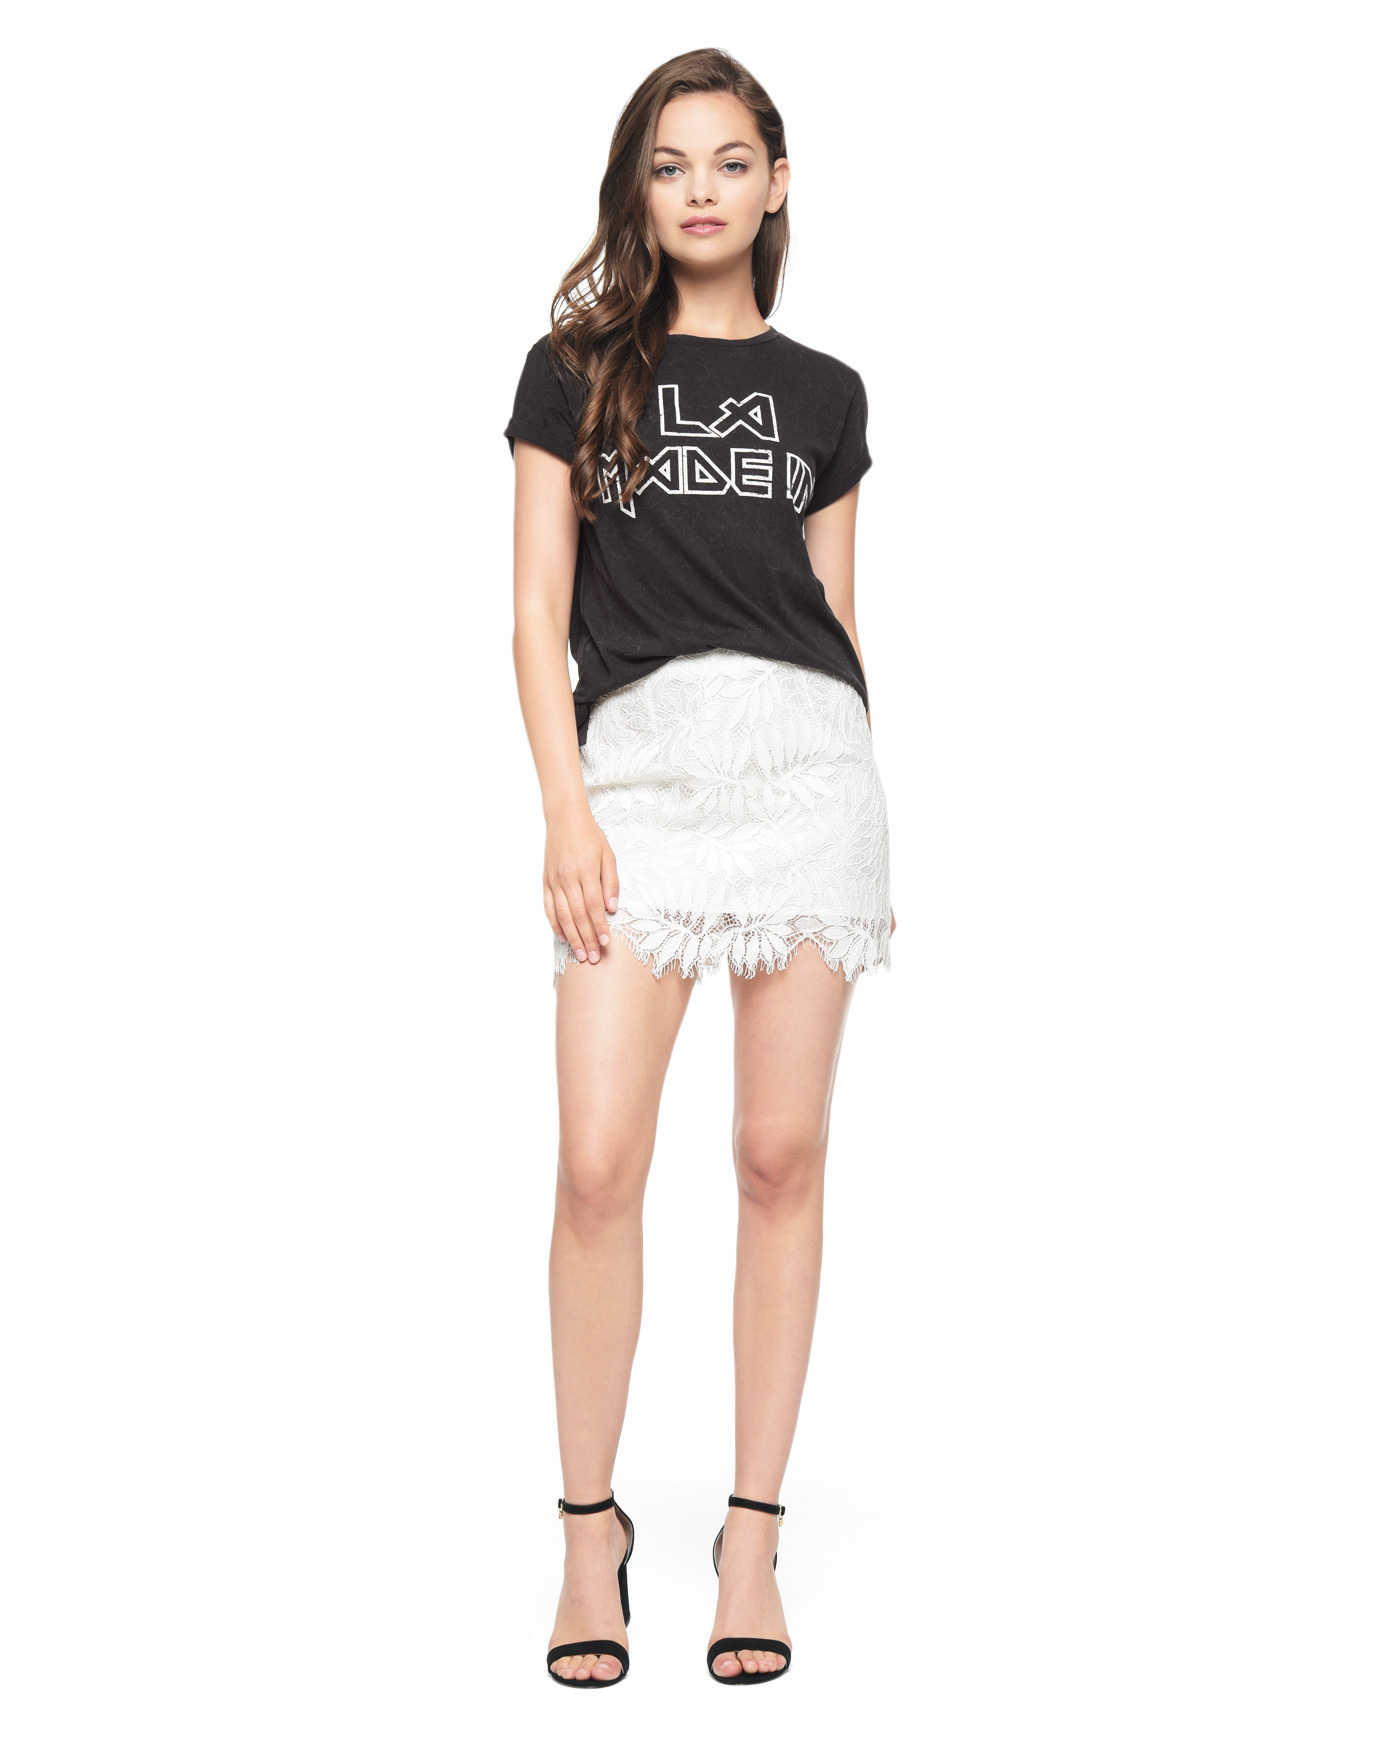 ★LA発 JUICY COUTURE LA MADE IN ROCK グラフィック Tシャツ★